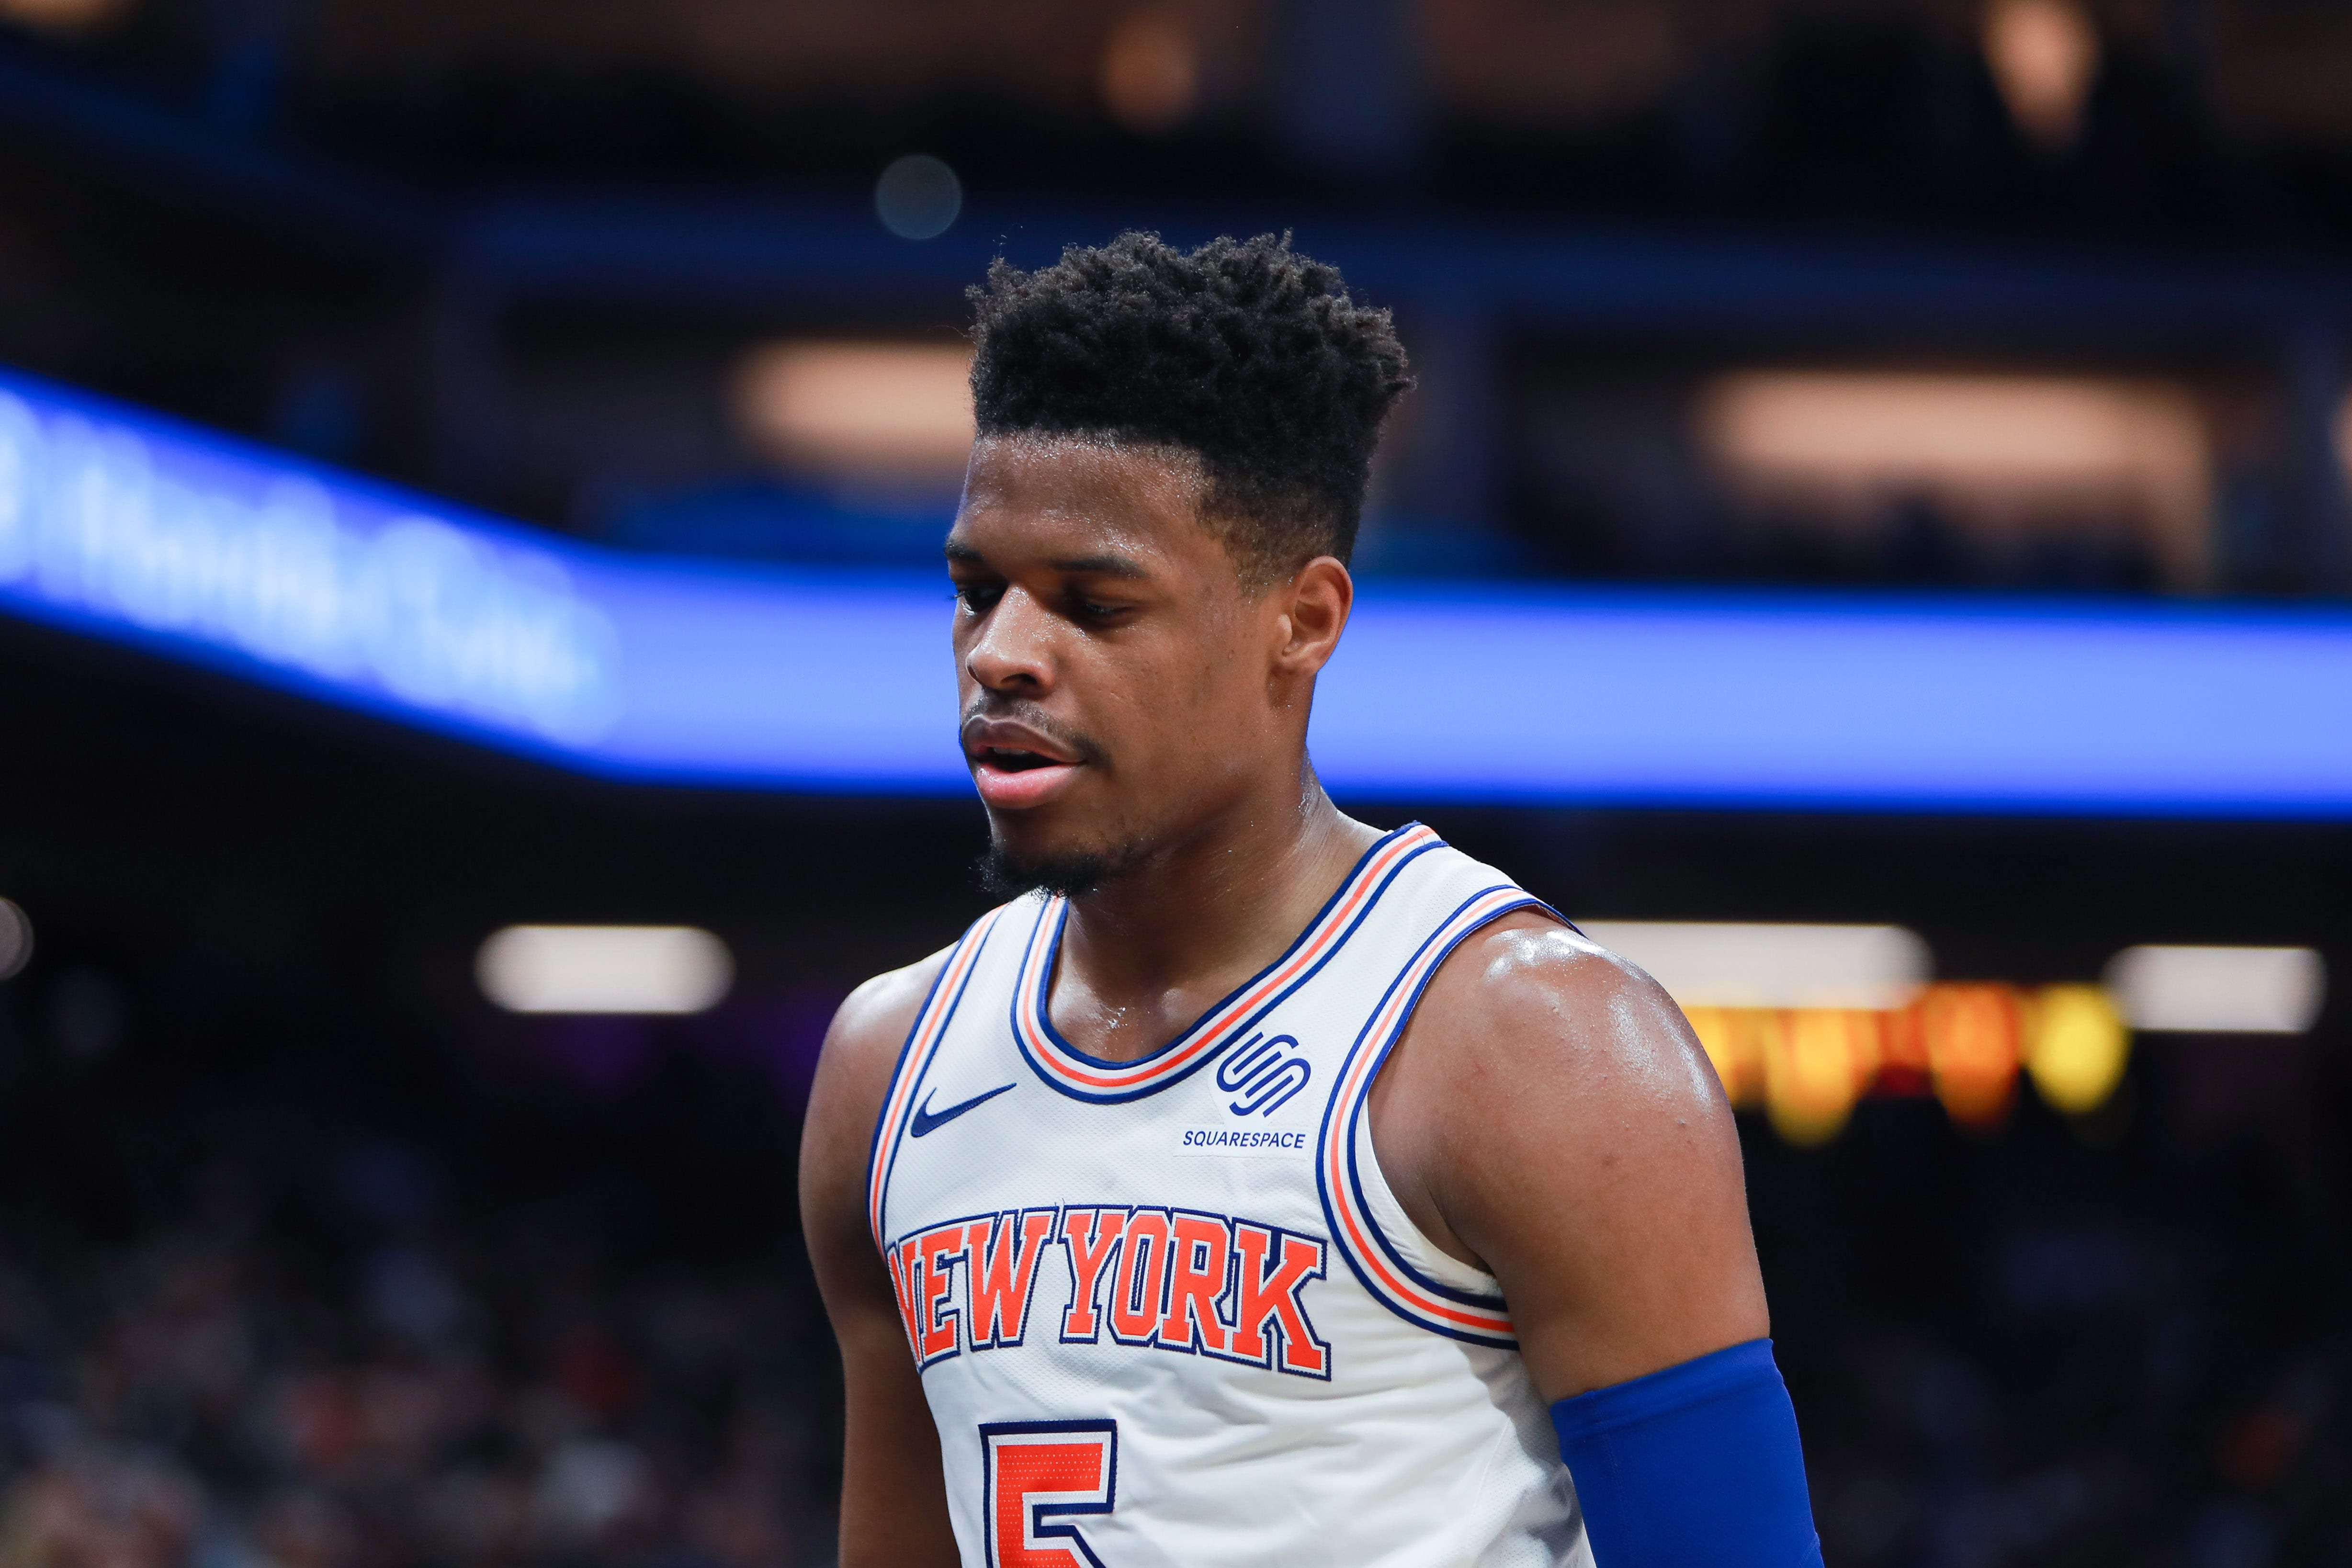 timeless design a0d24 c6200 New York Knicks: Why Dennis Smith Jr. could explode in 2019